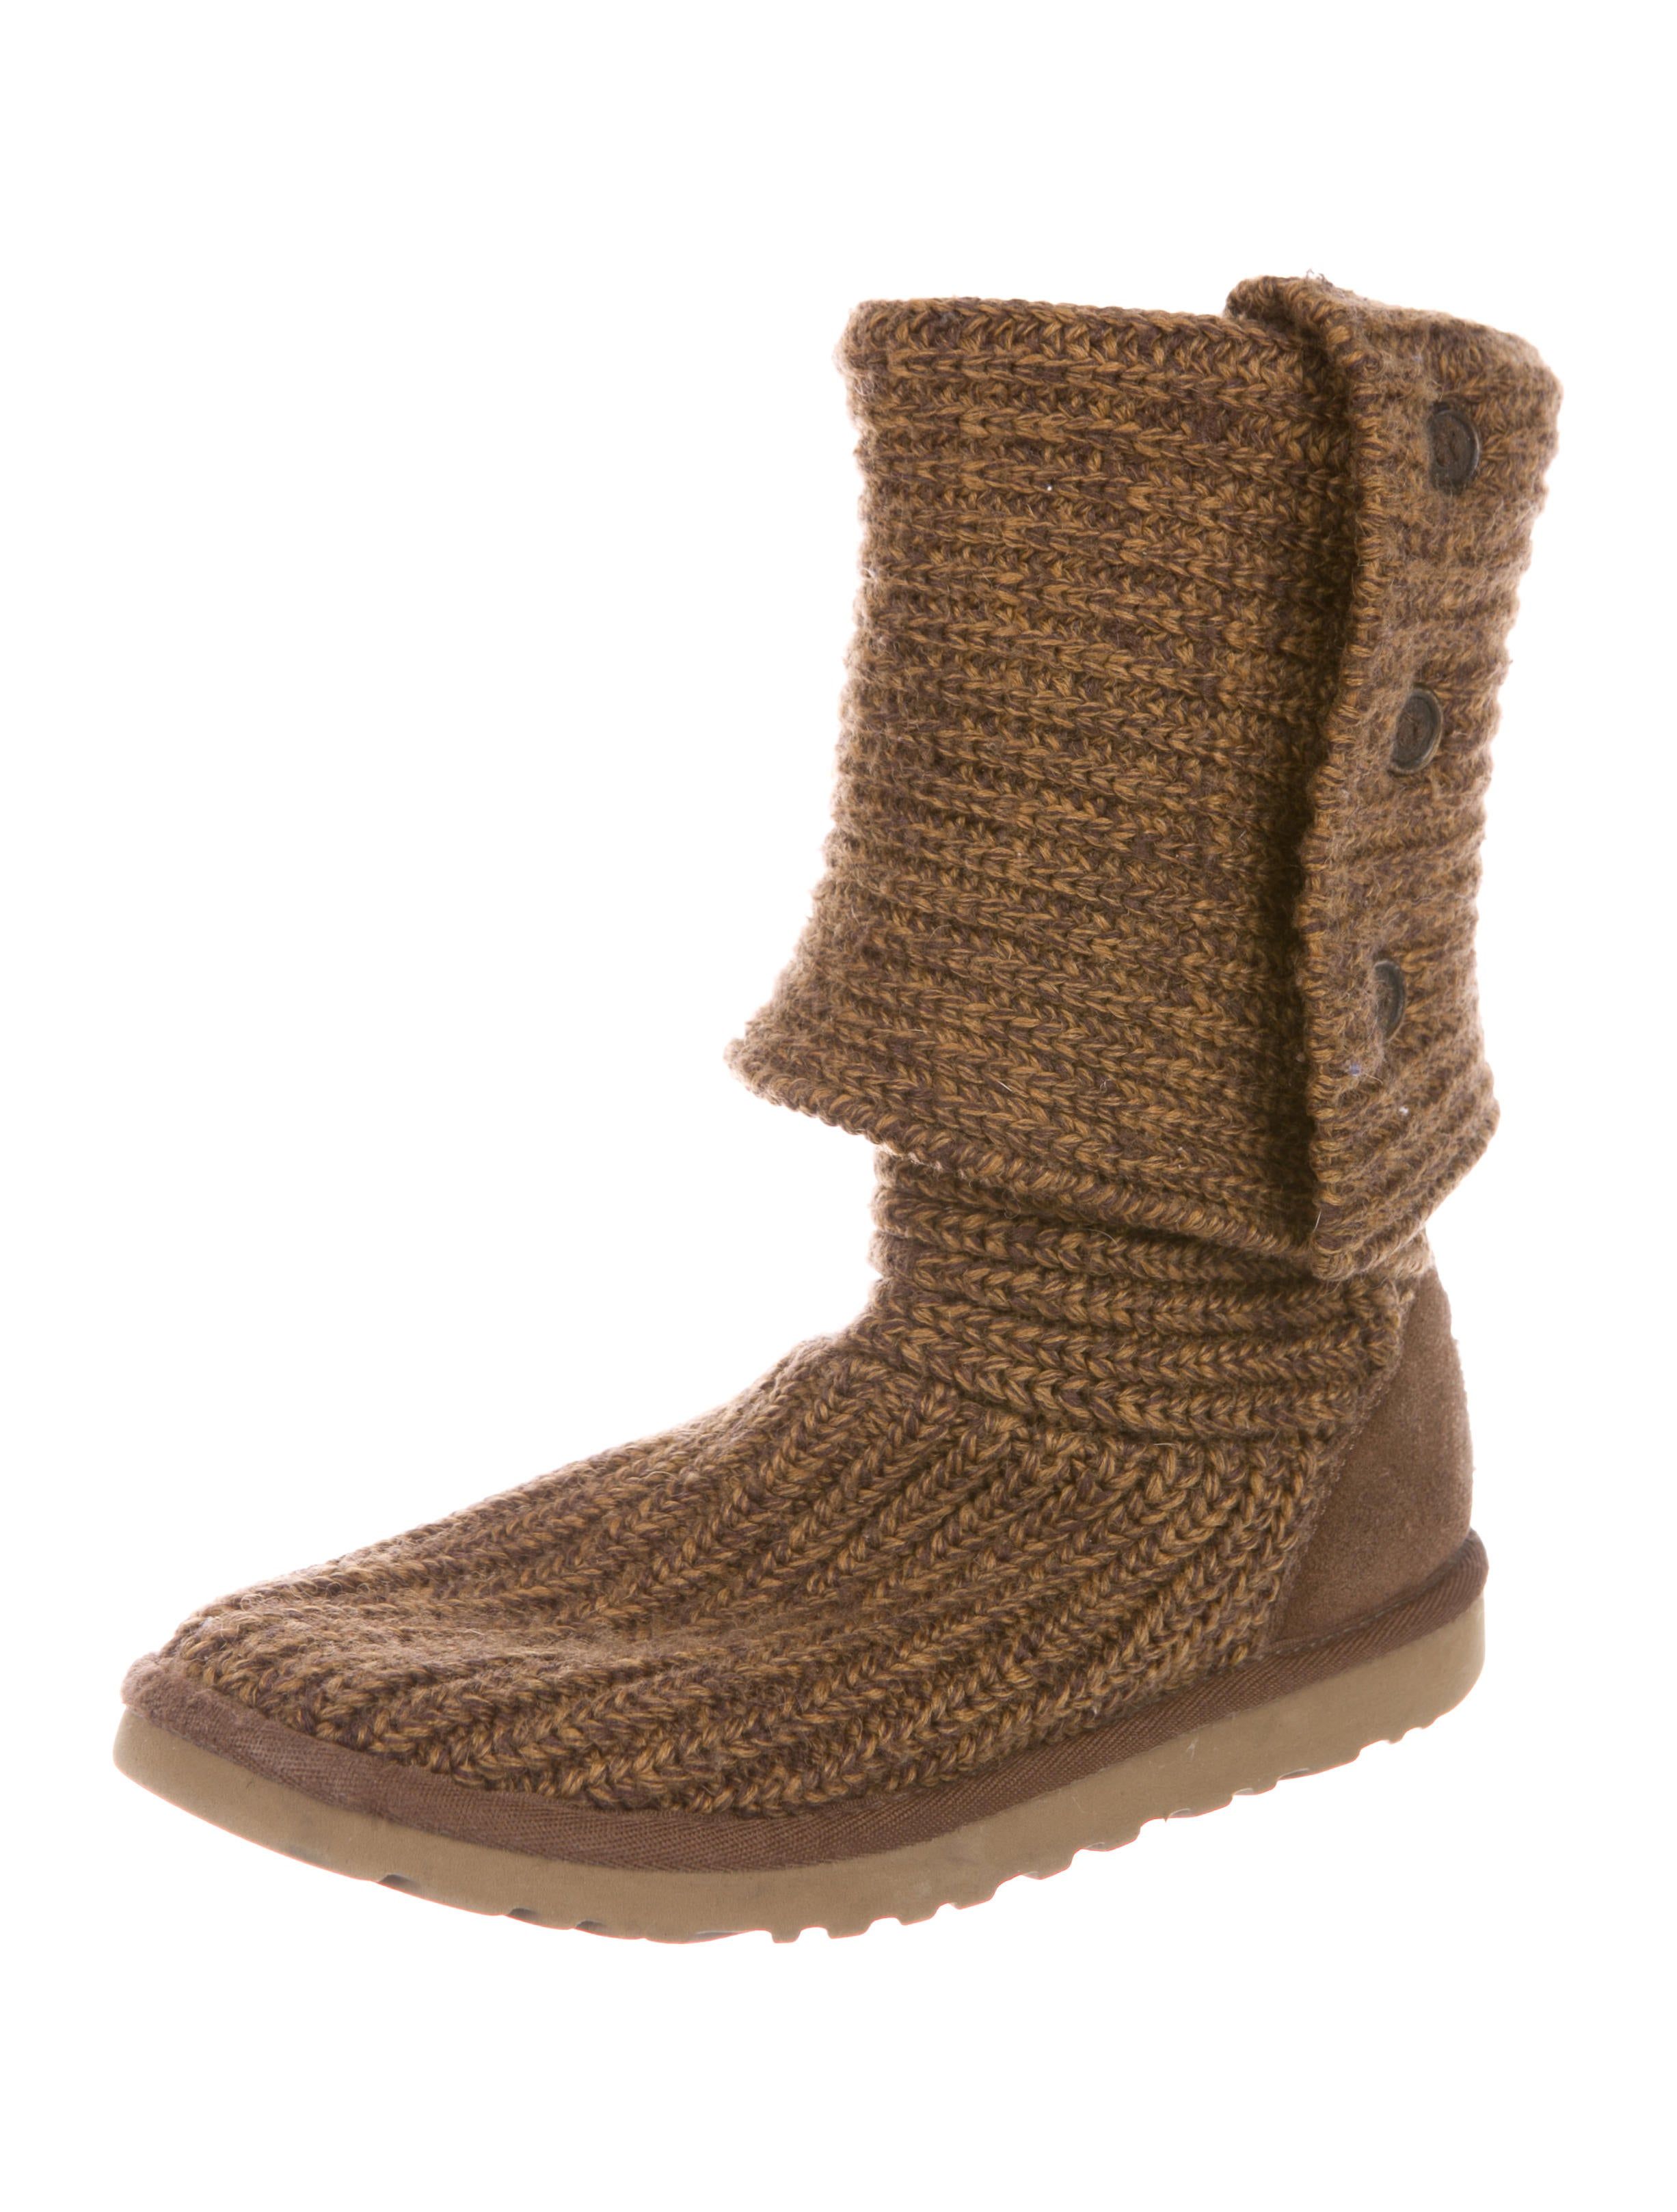 UGG Australia Knit Mid-Calf Boots outlet buy buy cheap visa payment clearance limited edition tYNY0P